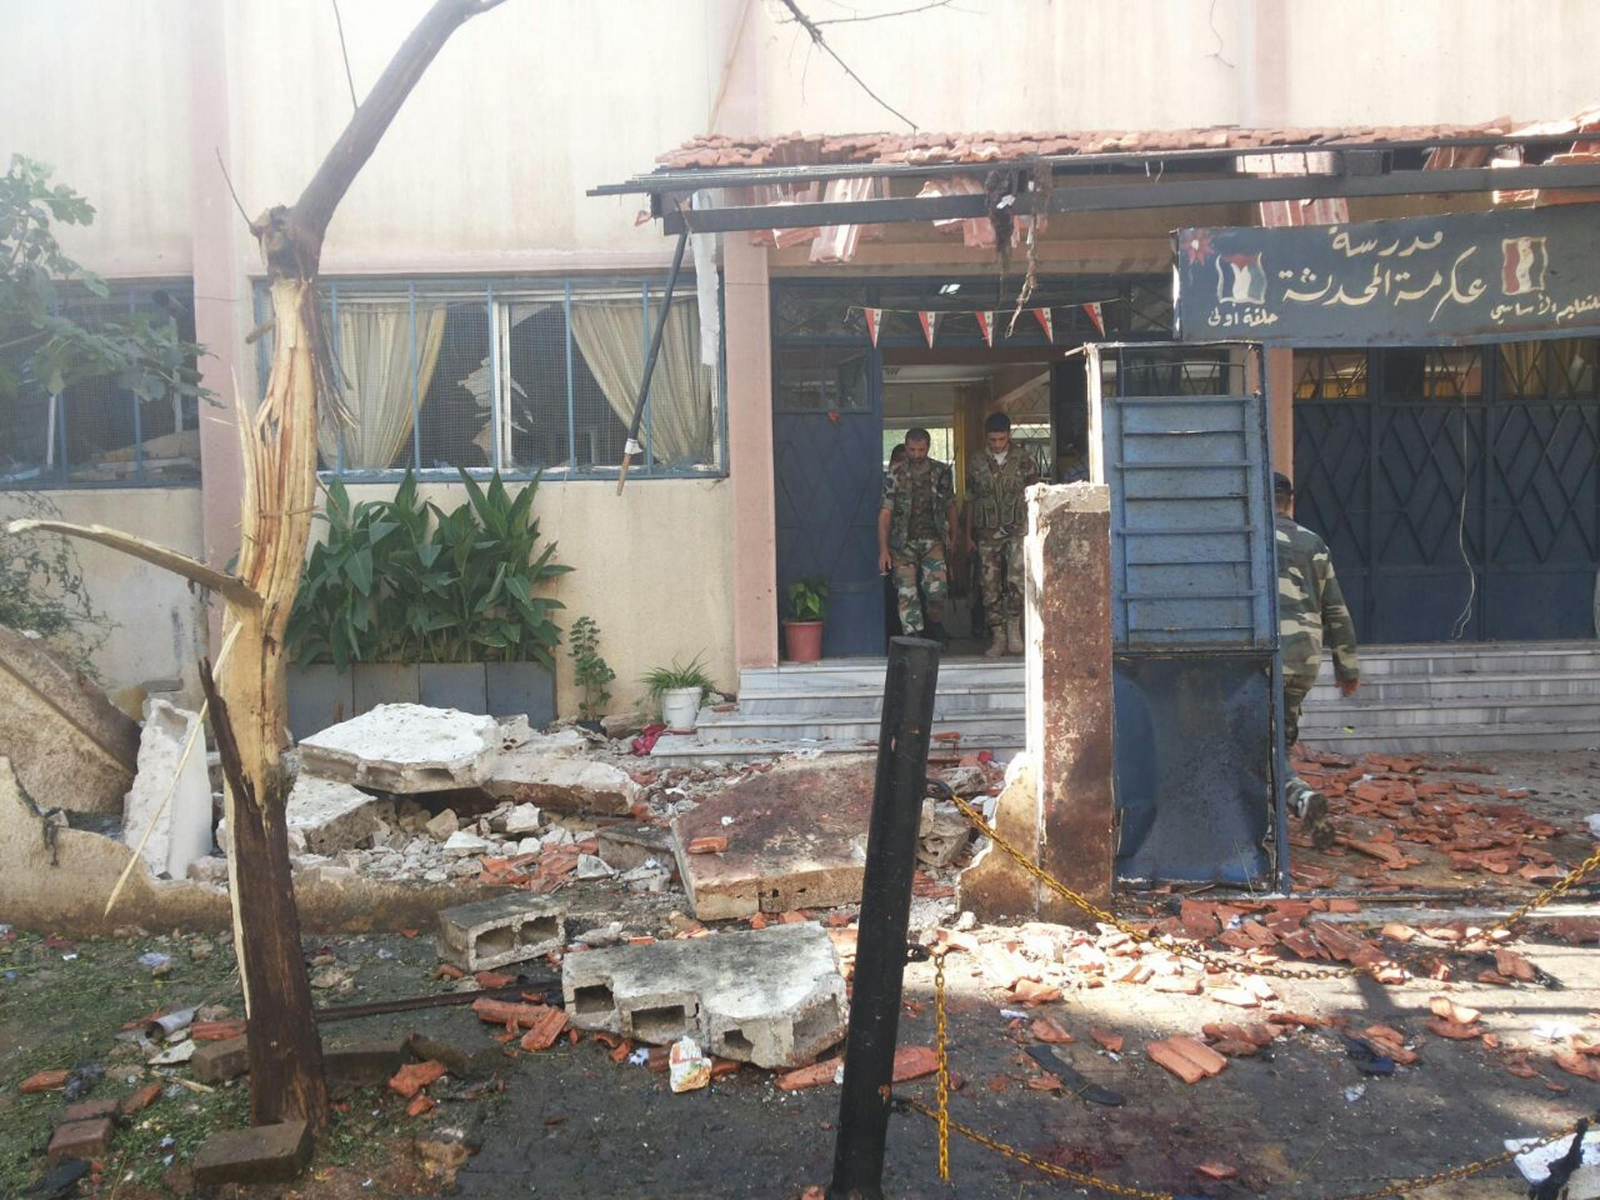 Two Blasts Kill at Least 18 in Syrian City of Homs